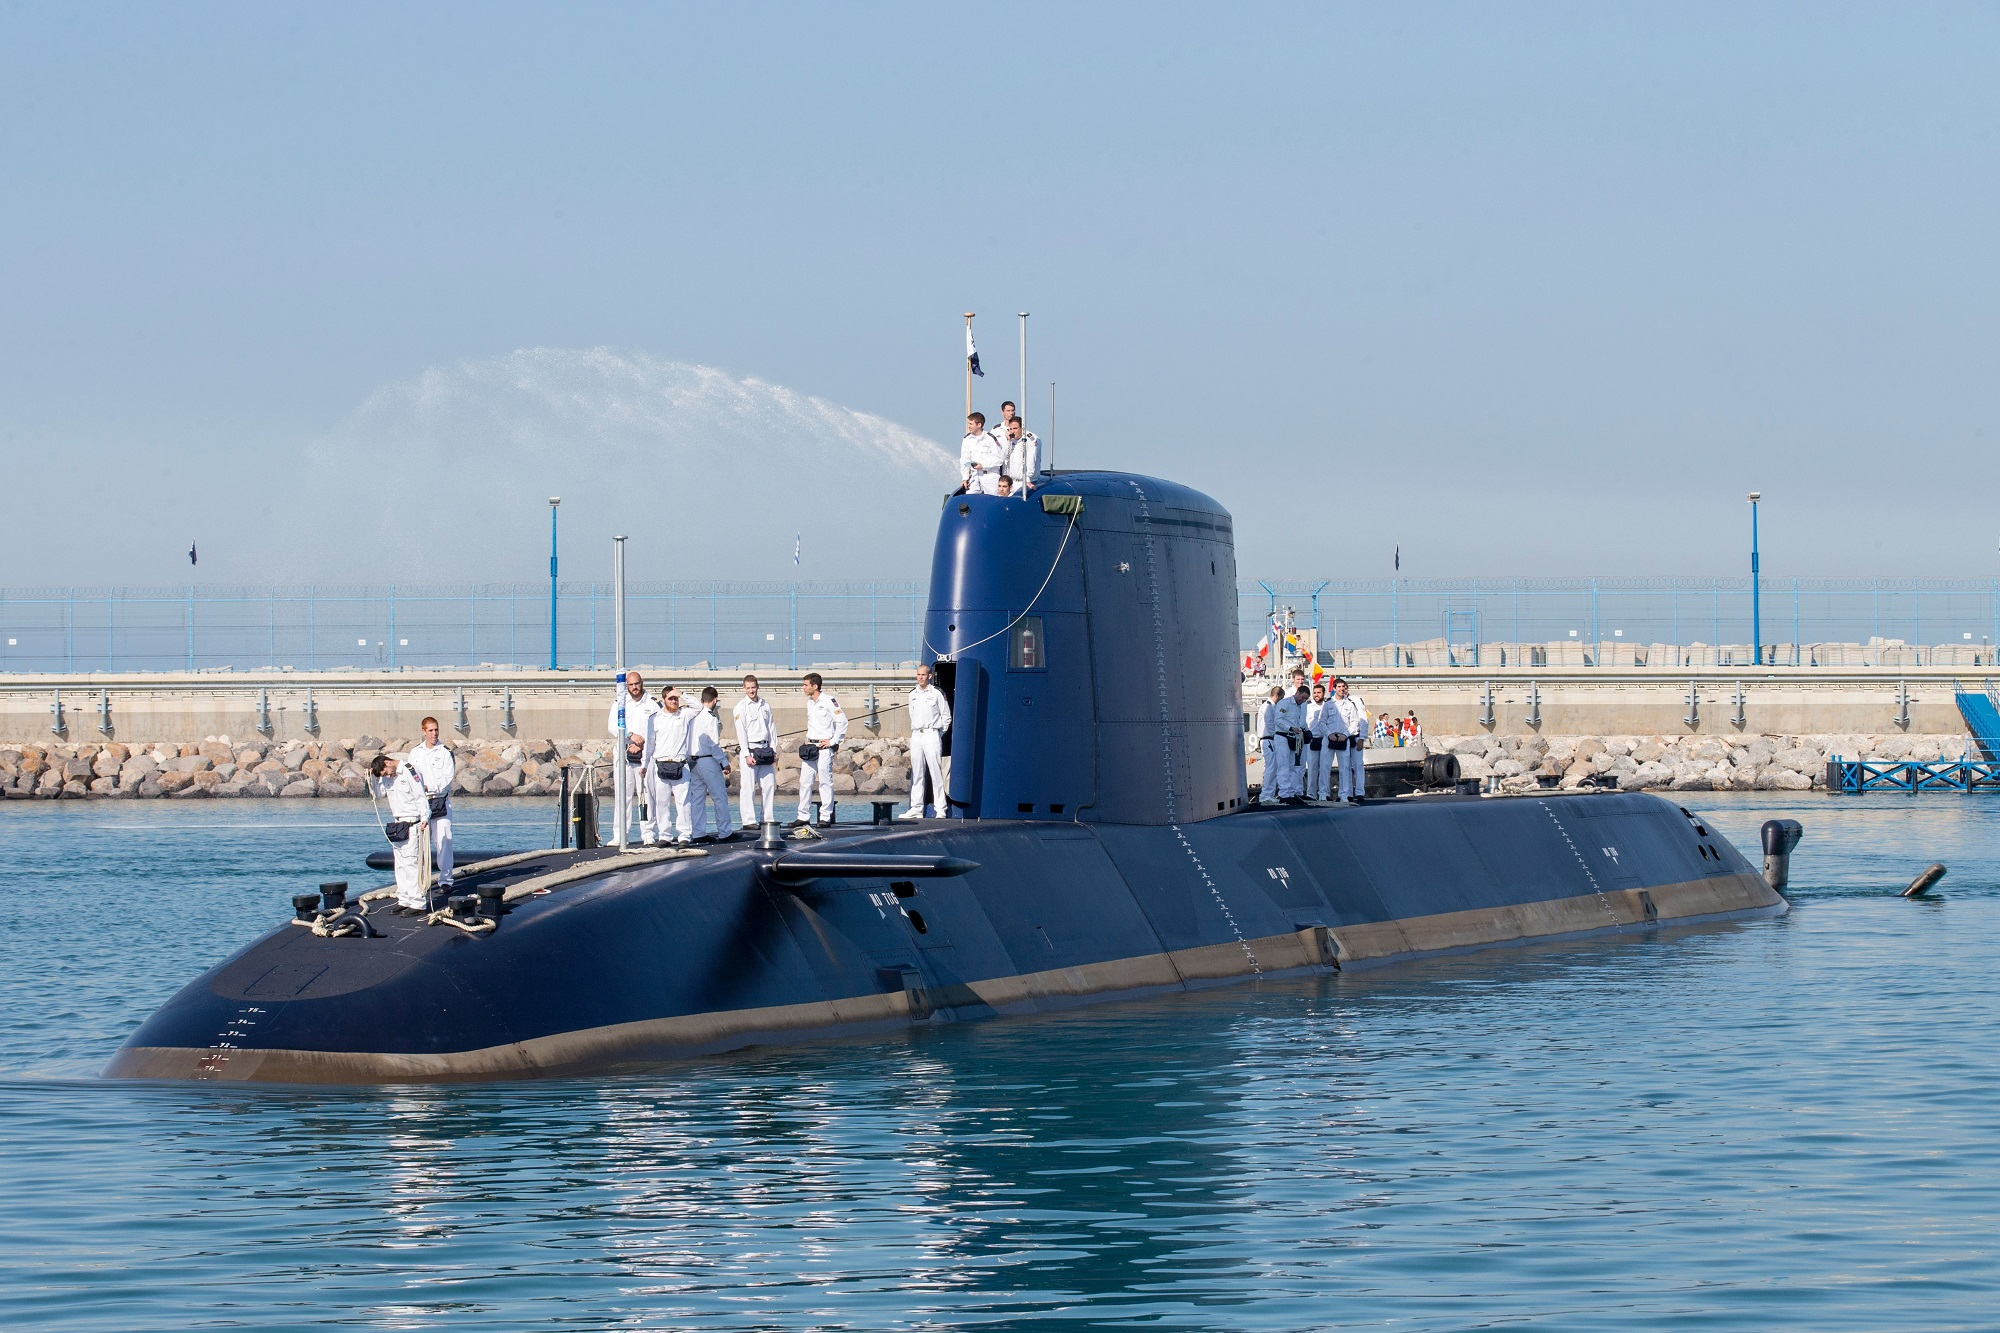 The German-made INS Rahav, the fifth Israeli Navy submarine, arrives at the military port of Haifa on Jan. 12, 2016. (Jack Guez/AFP via Getty Images)